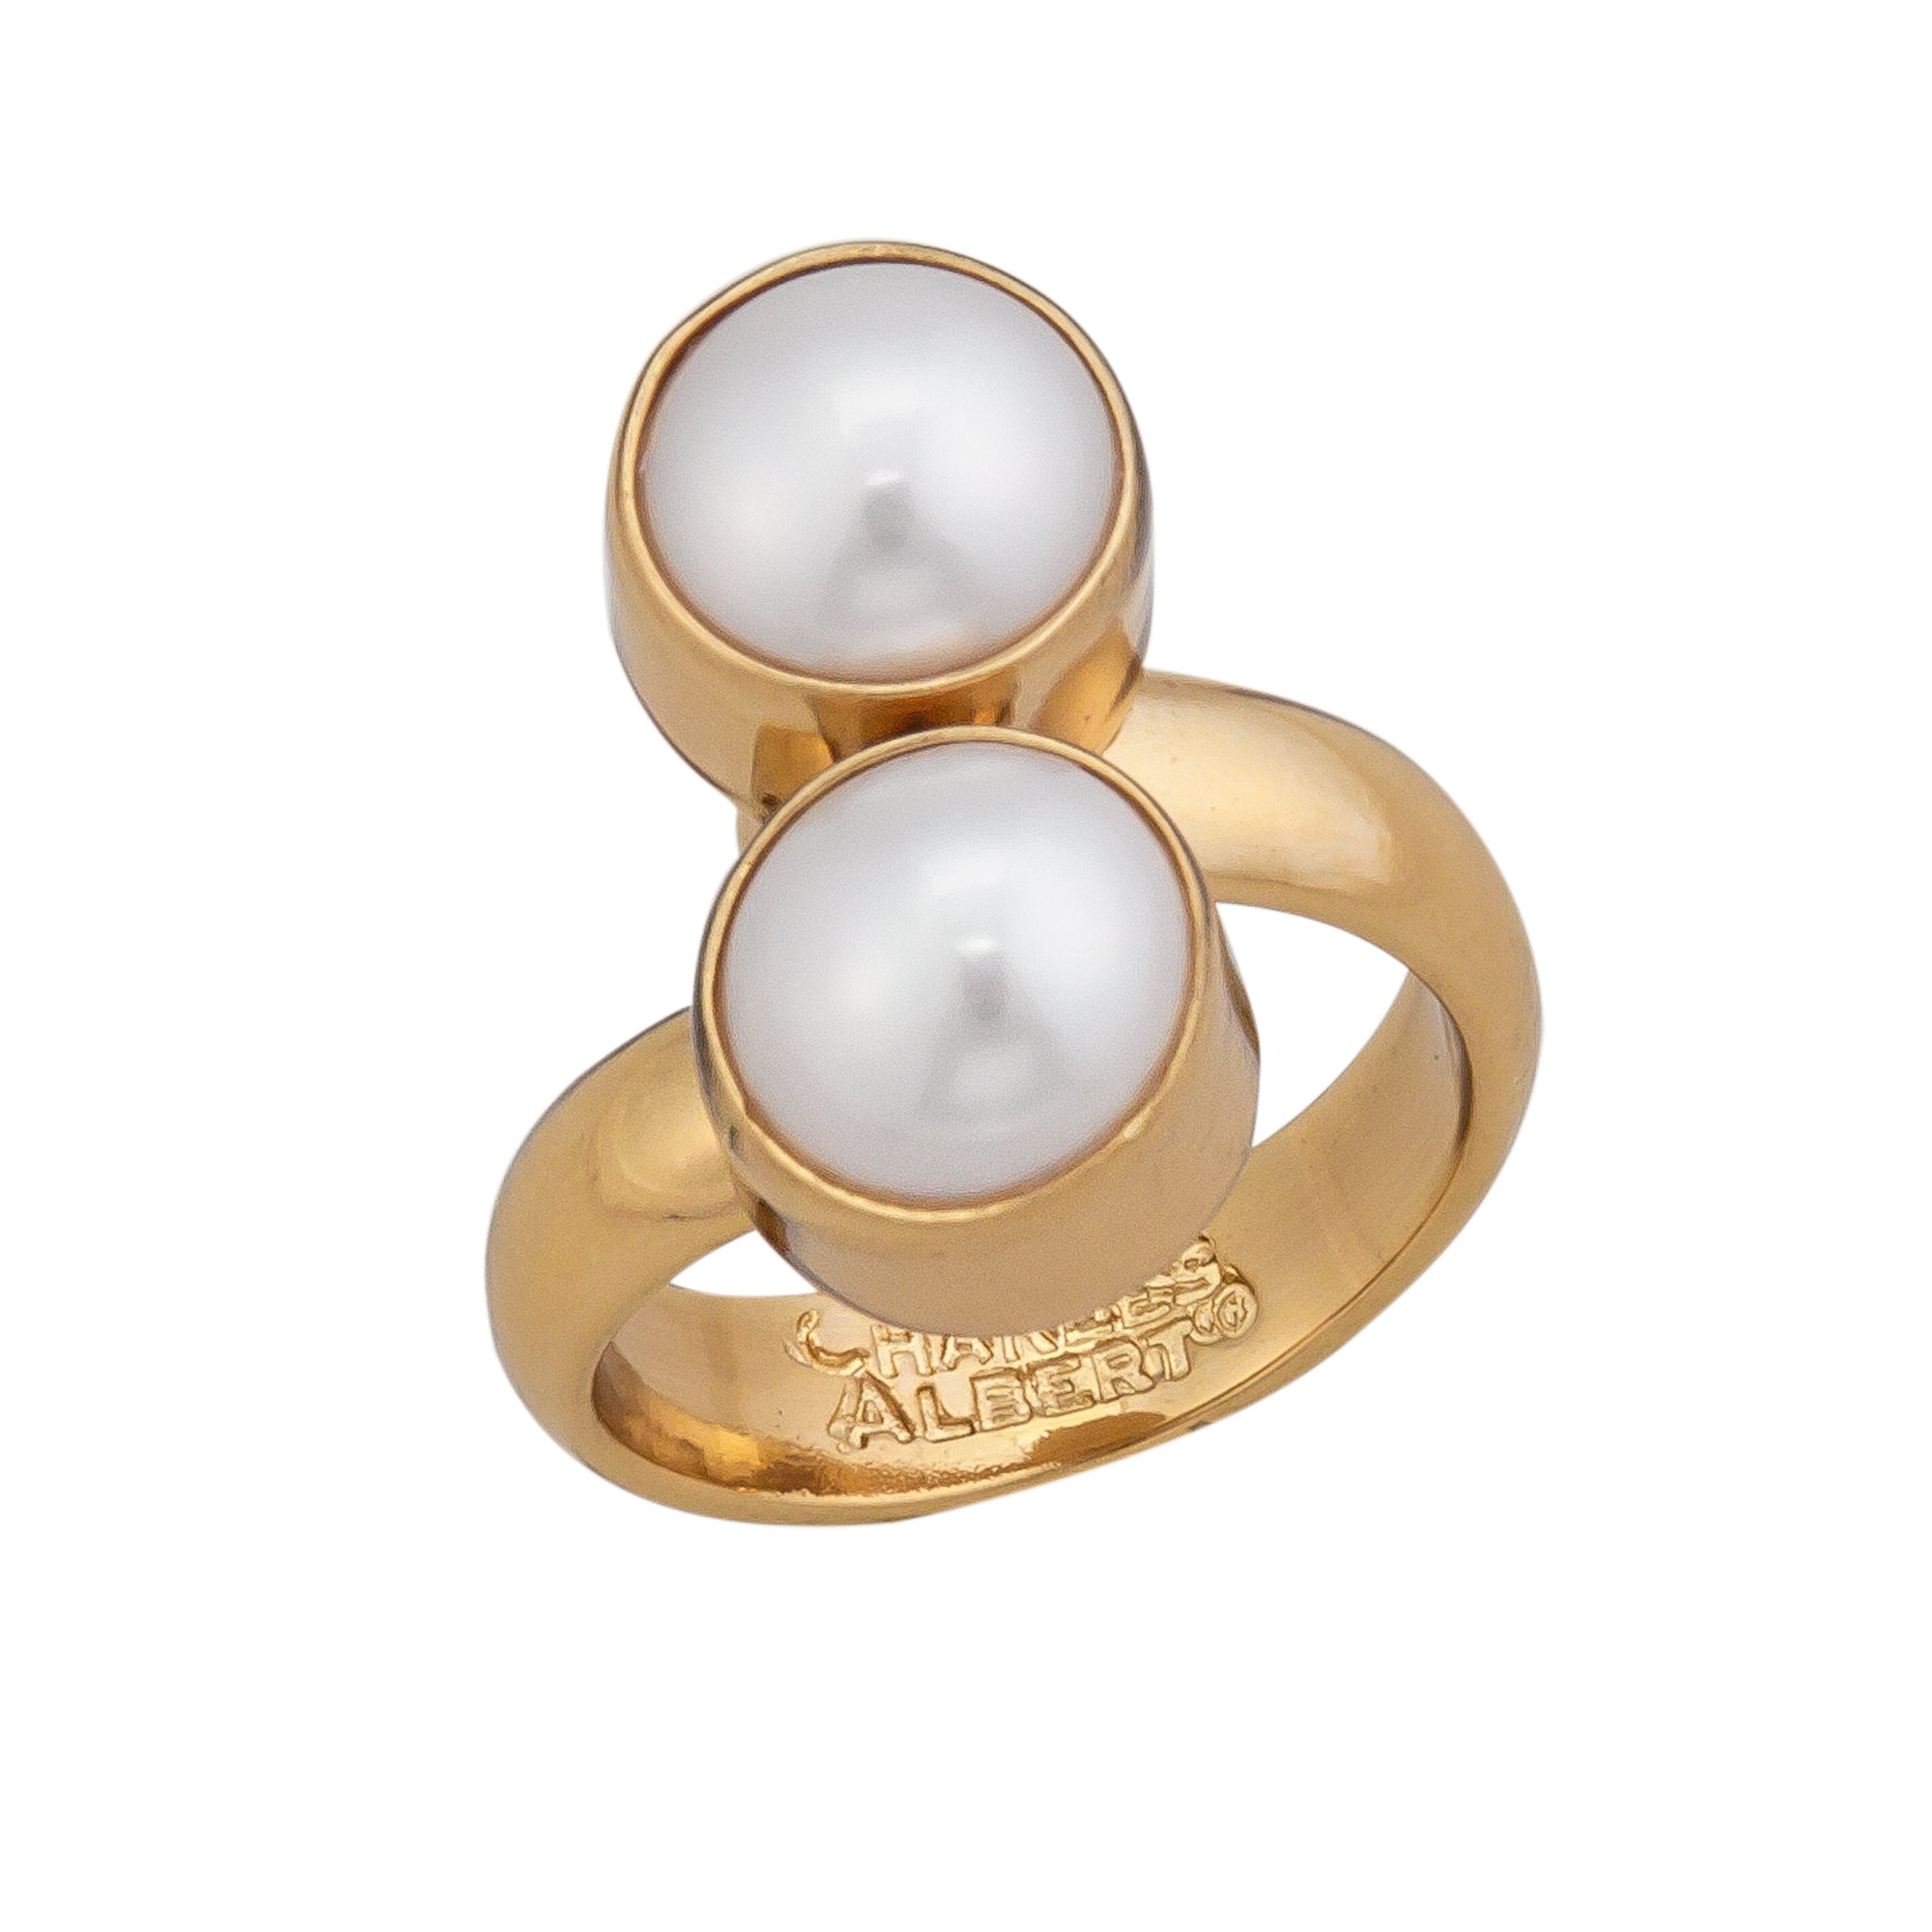 alchemia-pearl-bypass-adjustable-ring - 1 - Charles Albert Inc